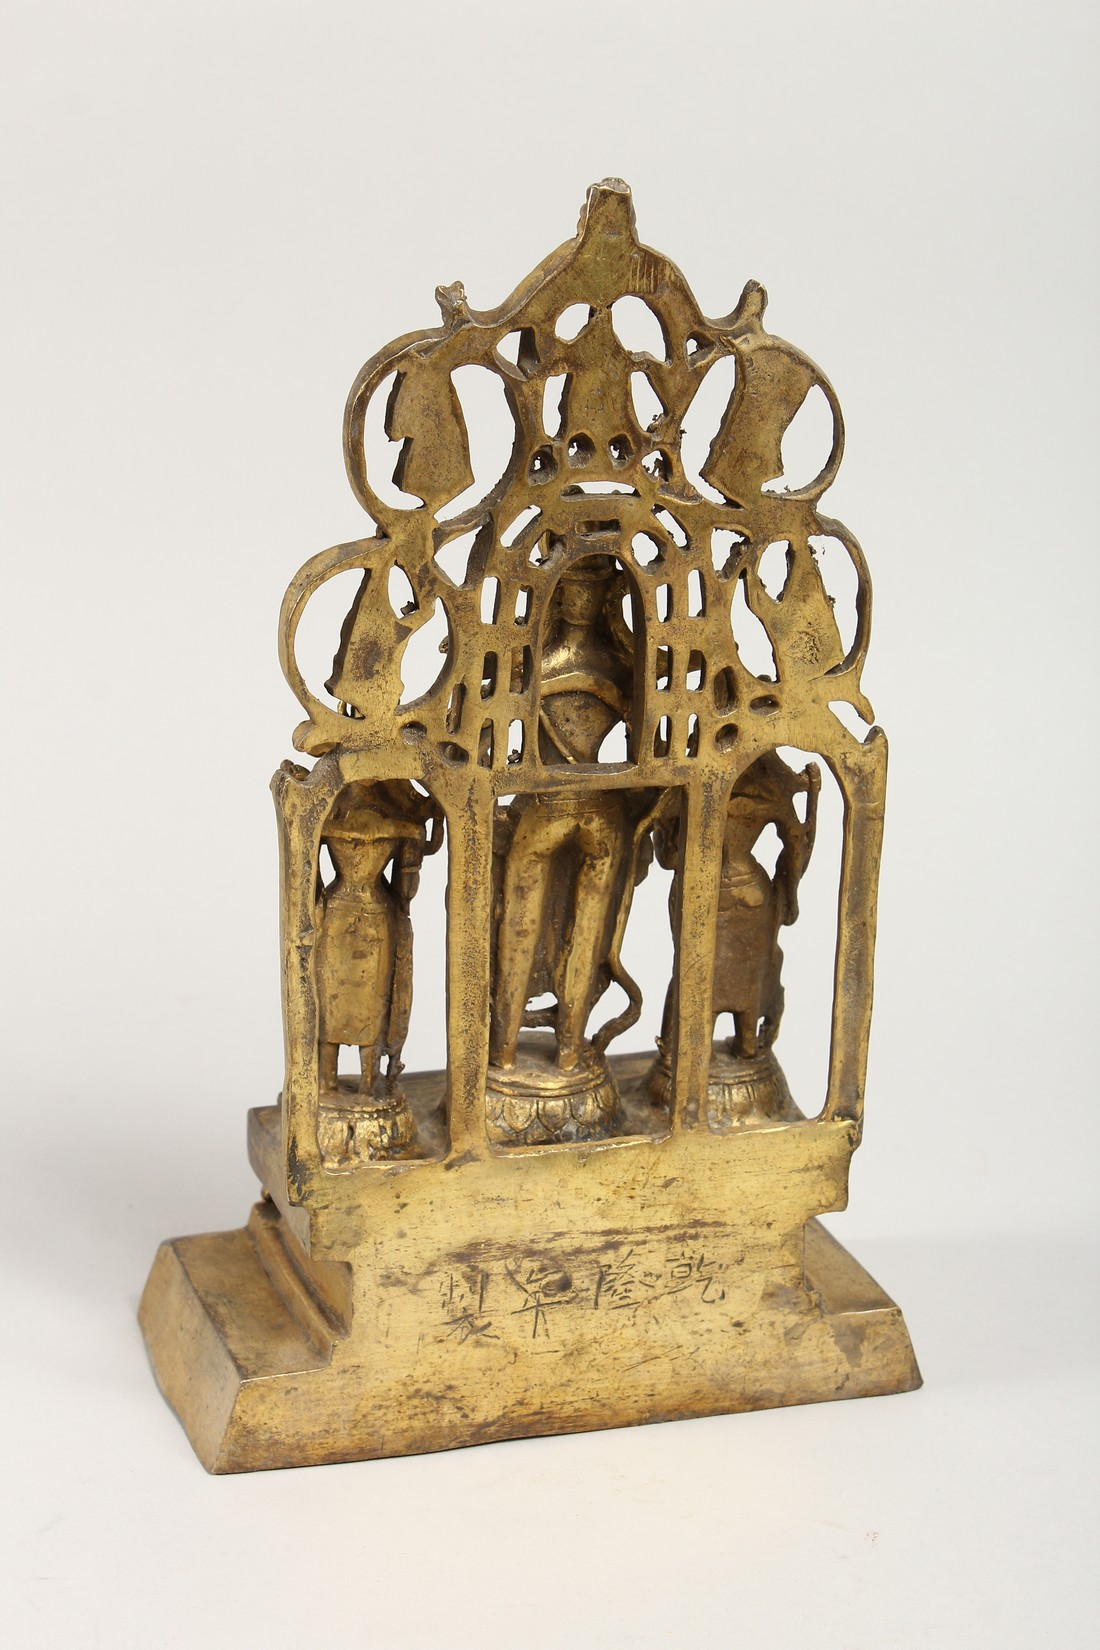 A CHINESE GILT BRONZE FIGURAL SHRINE 11ins high - Image 3 of 4